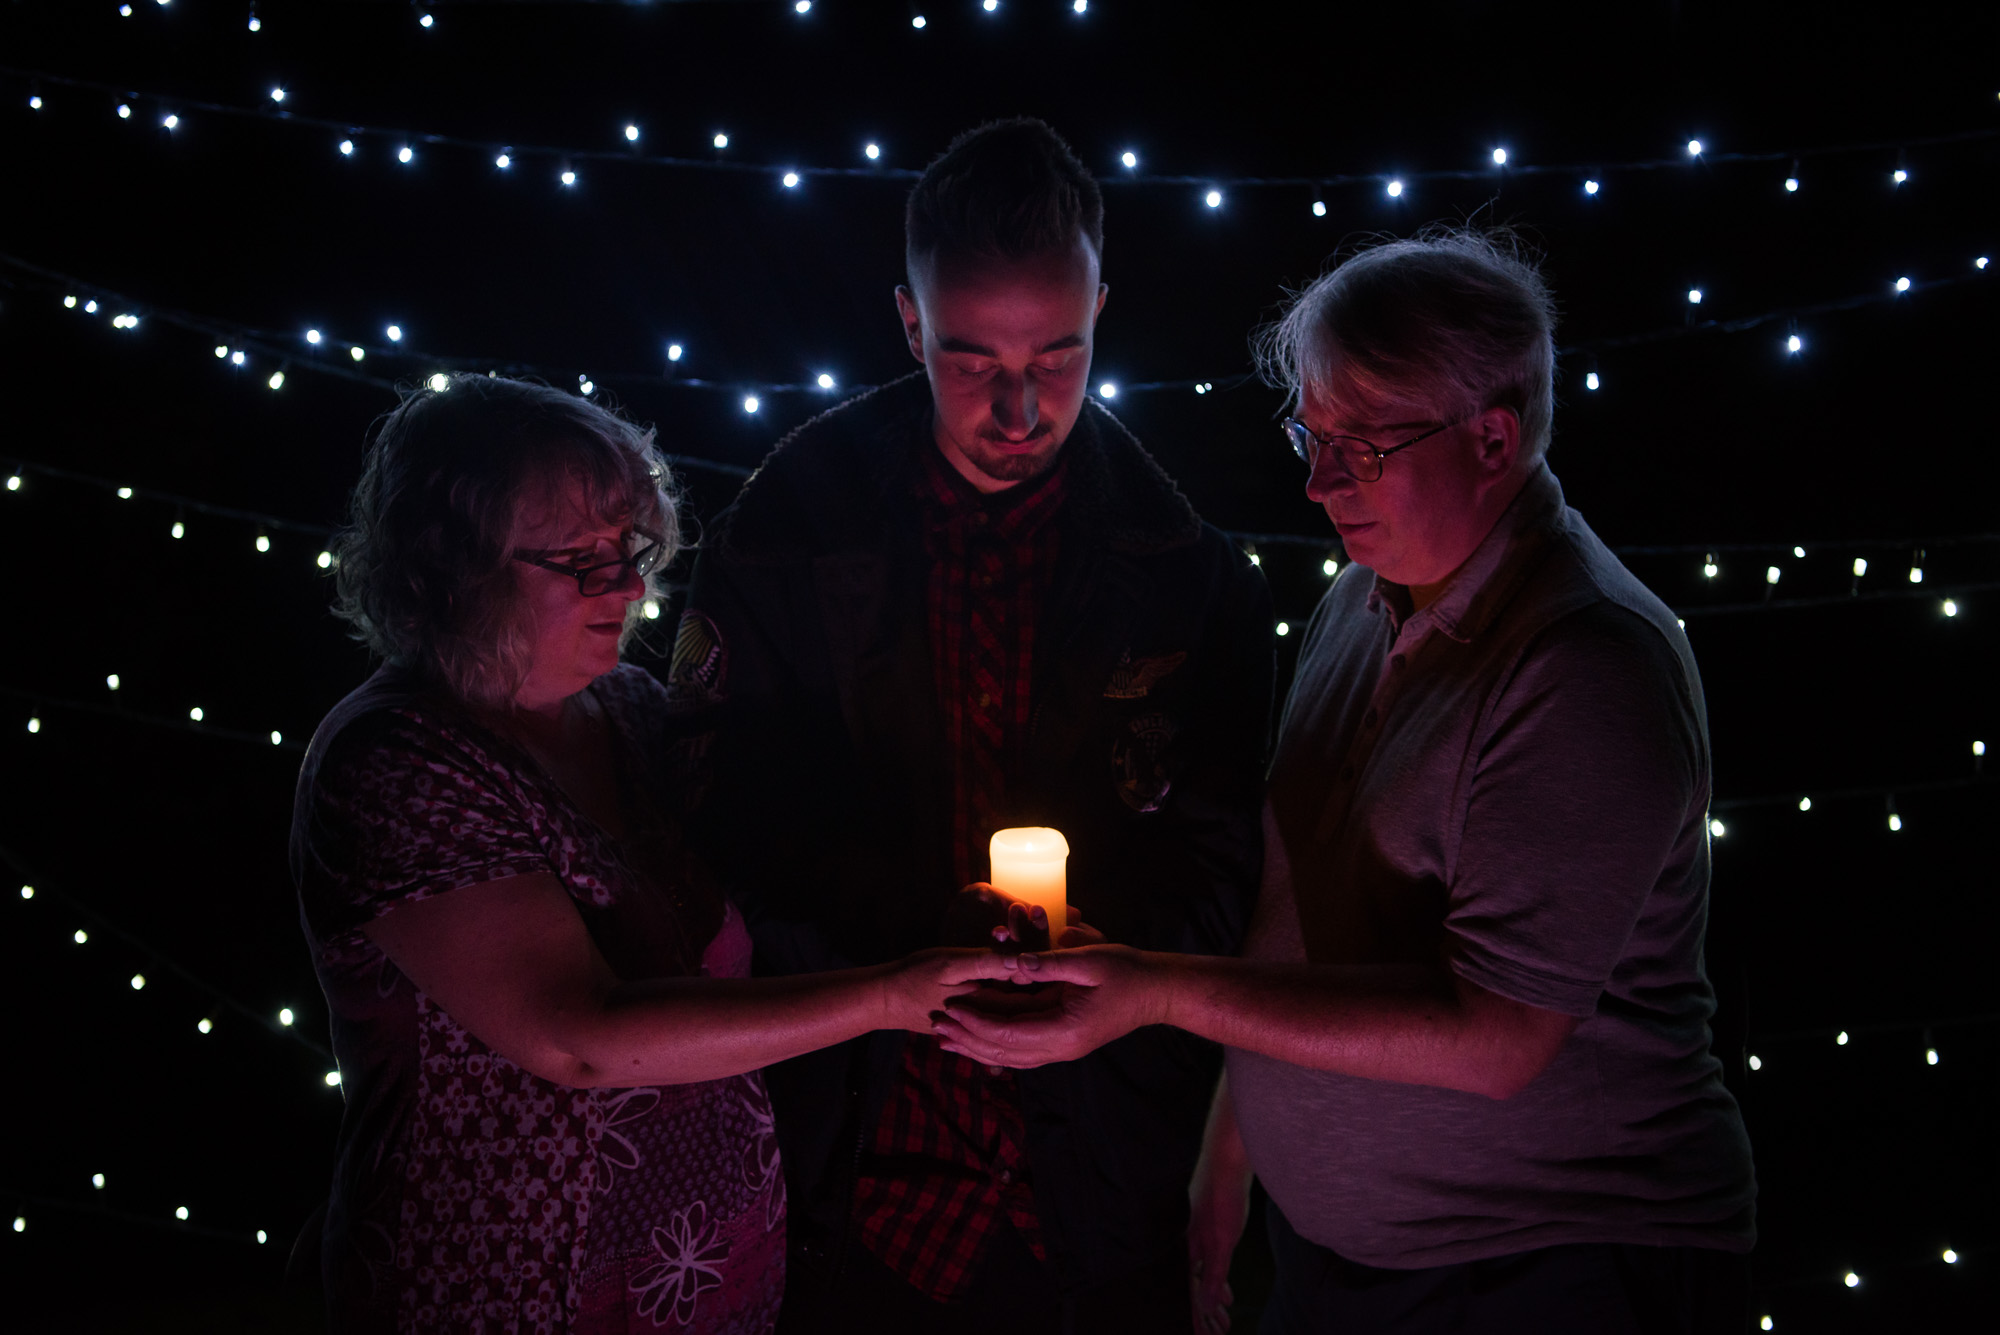 Family holding a candle at Light up a life